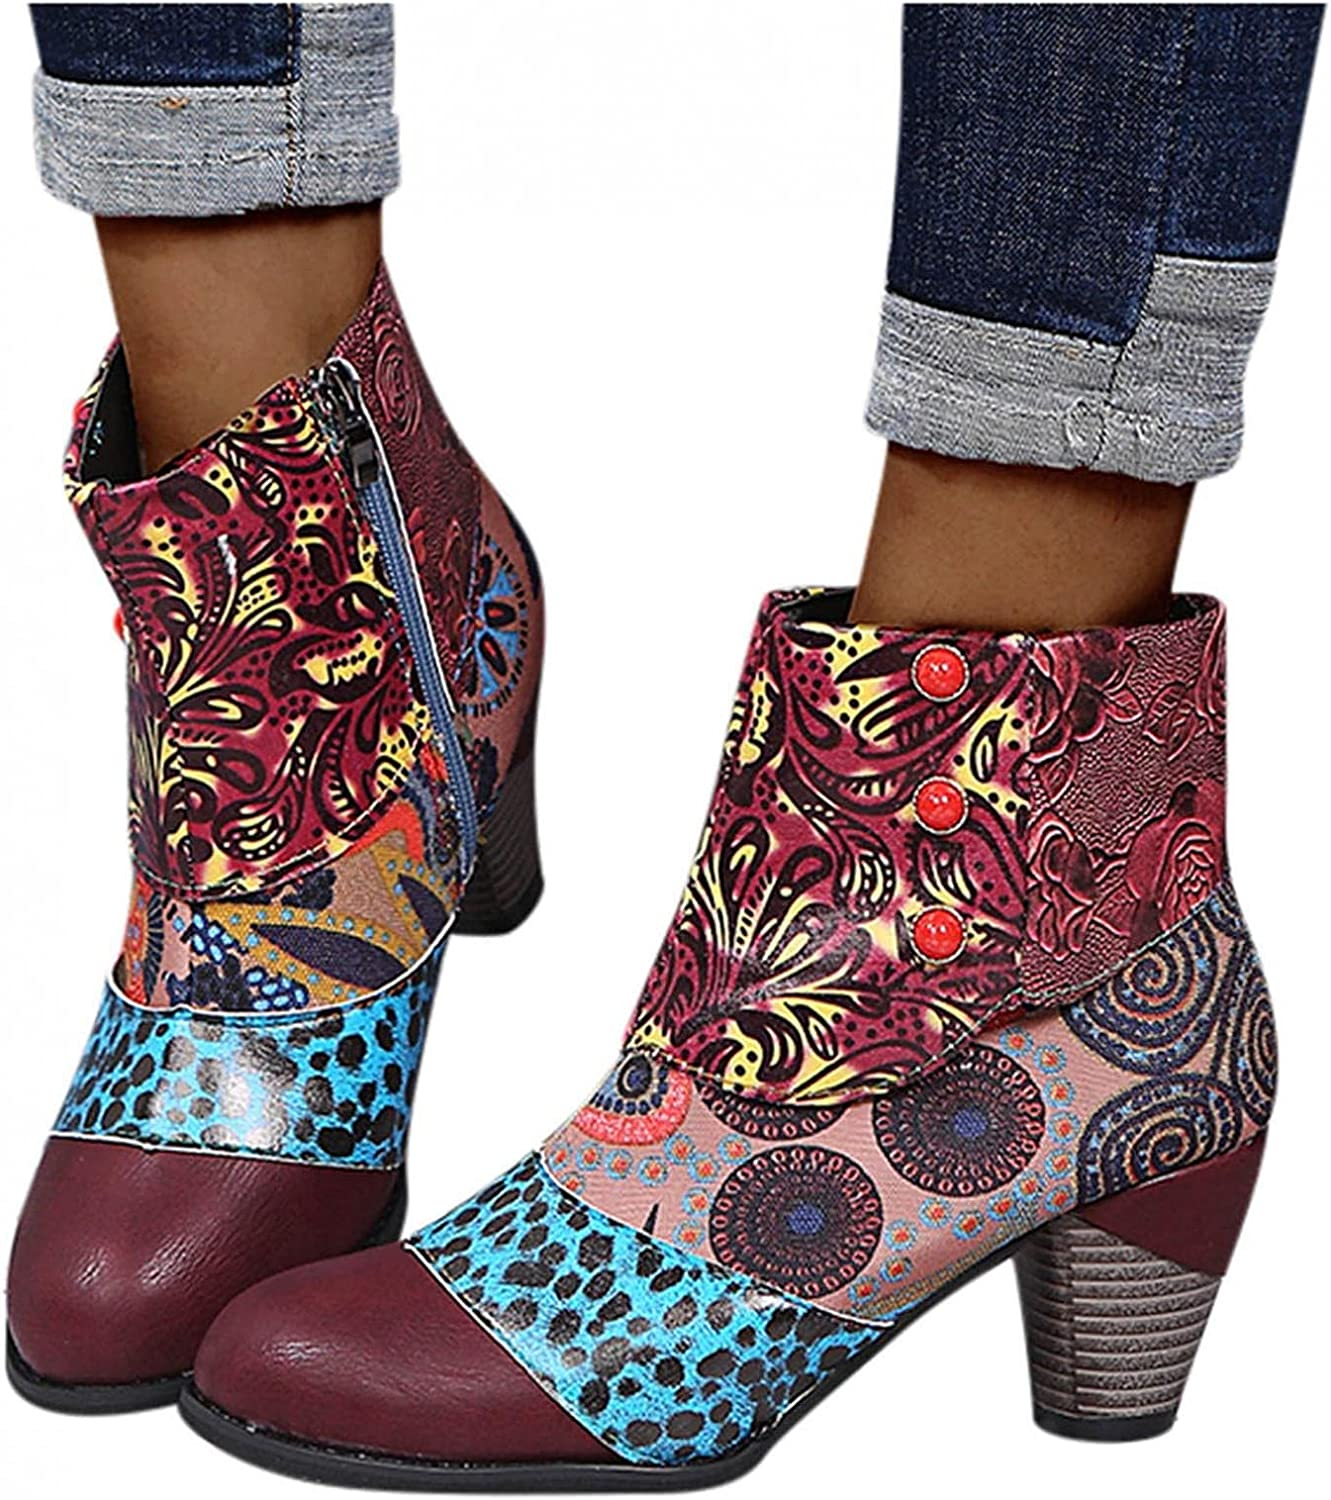 Boots for Women,Womens Lace Up Ankle Short Booties Classic Boots Closed-Toe Motorcycle Low Heel Boots Western Shoes